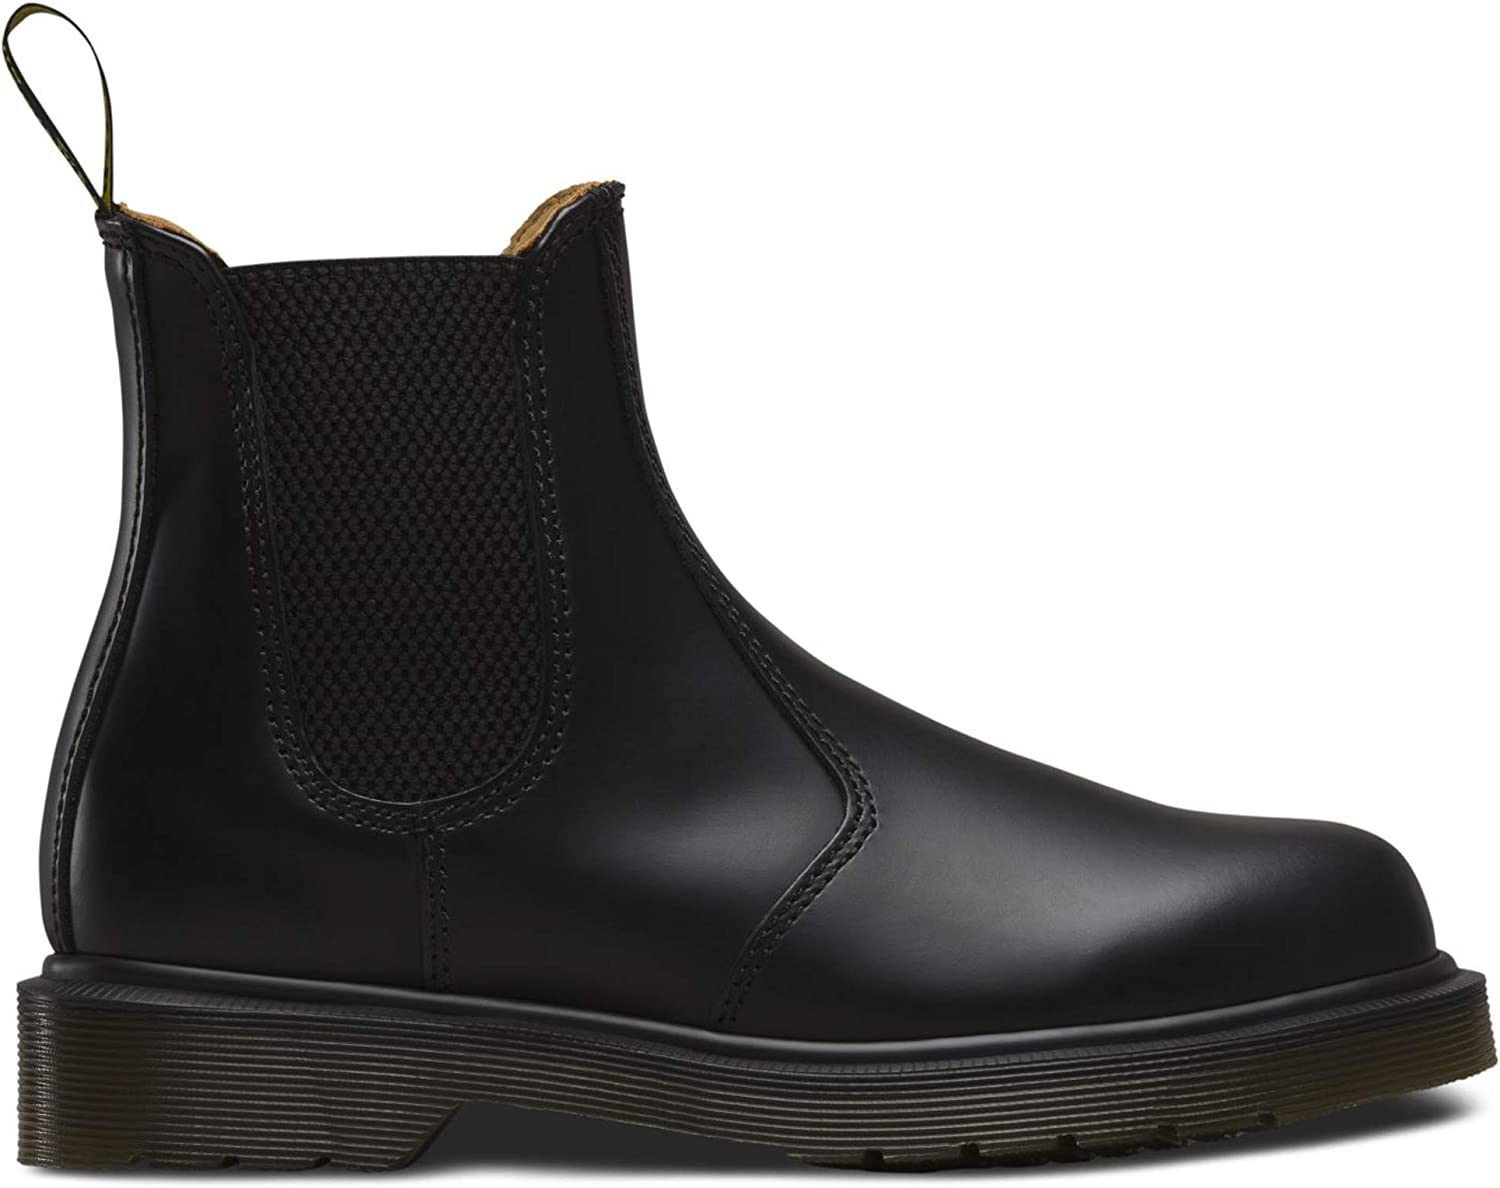 Martens 2976 Chelsea Boot,Black Smooth Dr